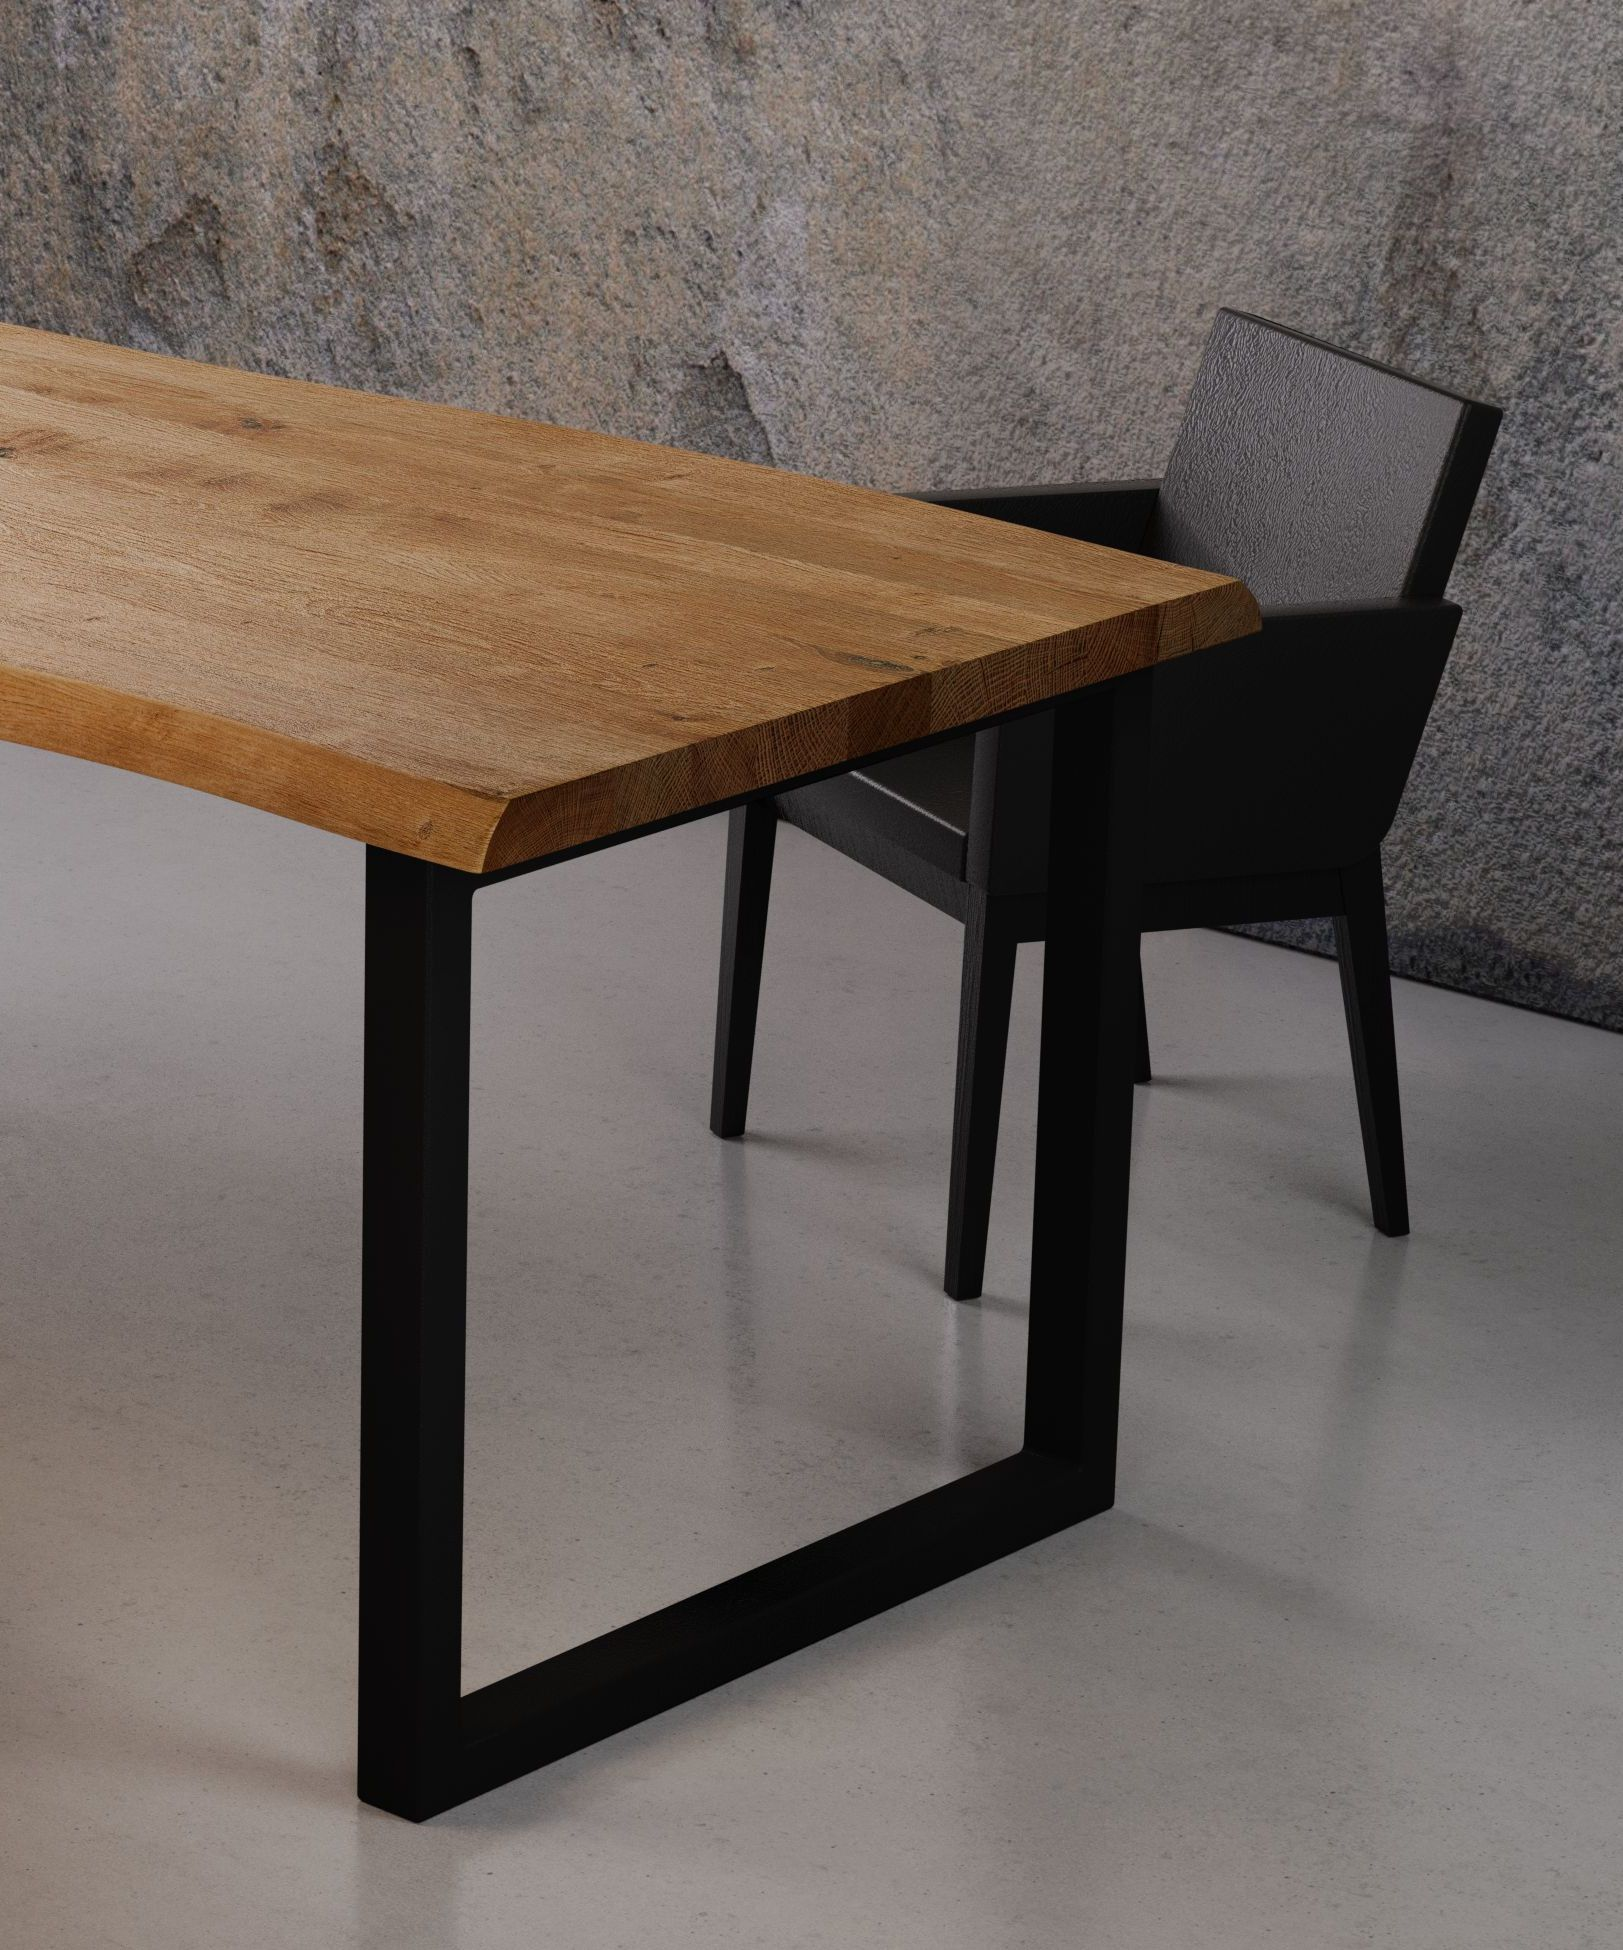 The Tabletop Is Thick And Made Of Reclaimed, Solid Oak,